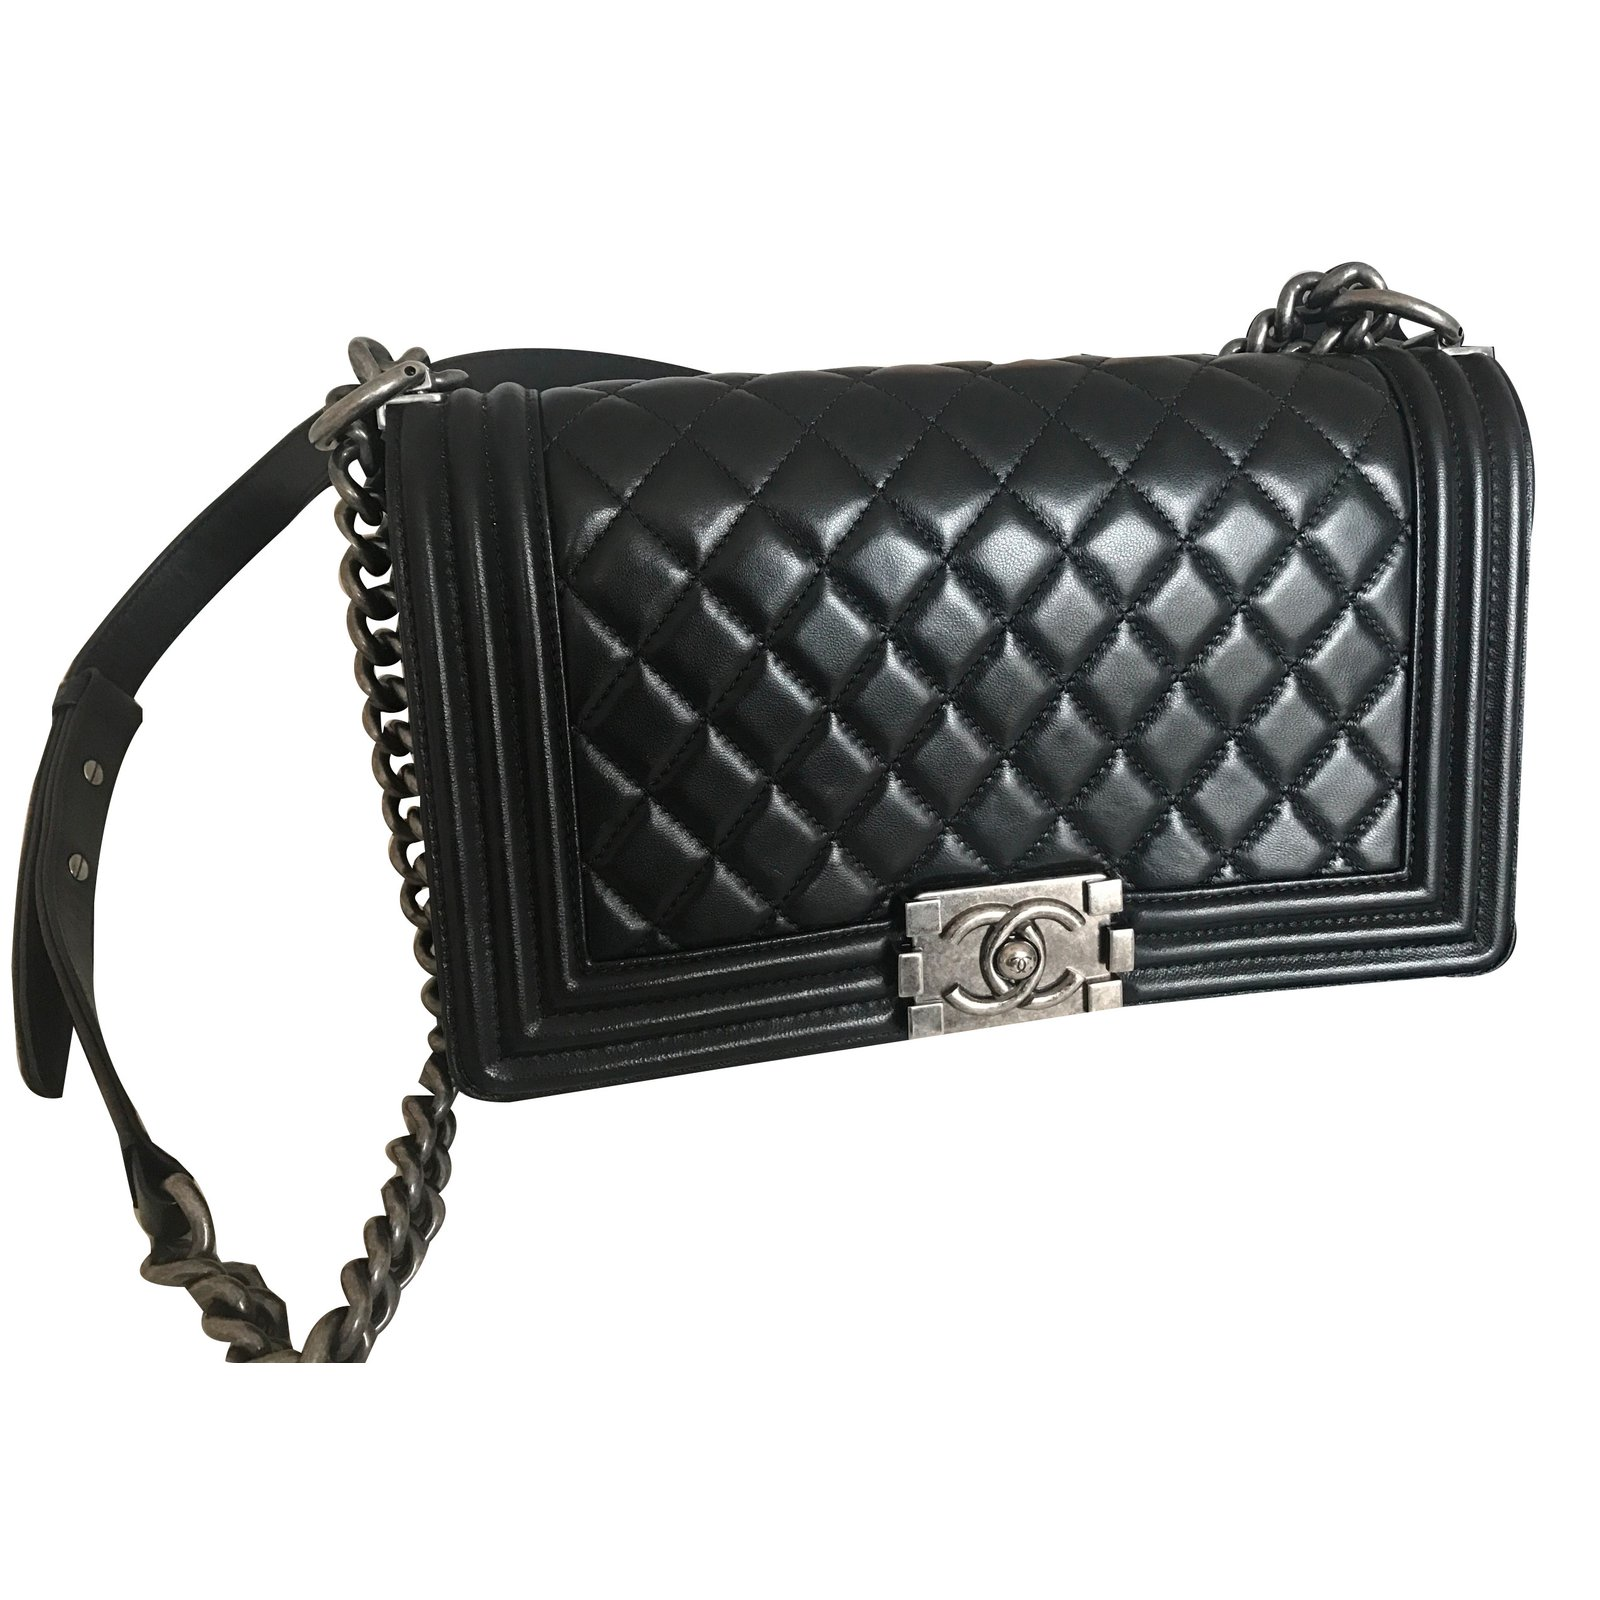 Chanel Le Boy Bag Handbags Leather Black Ref 58777